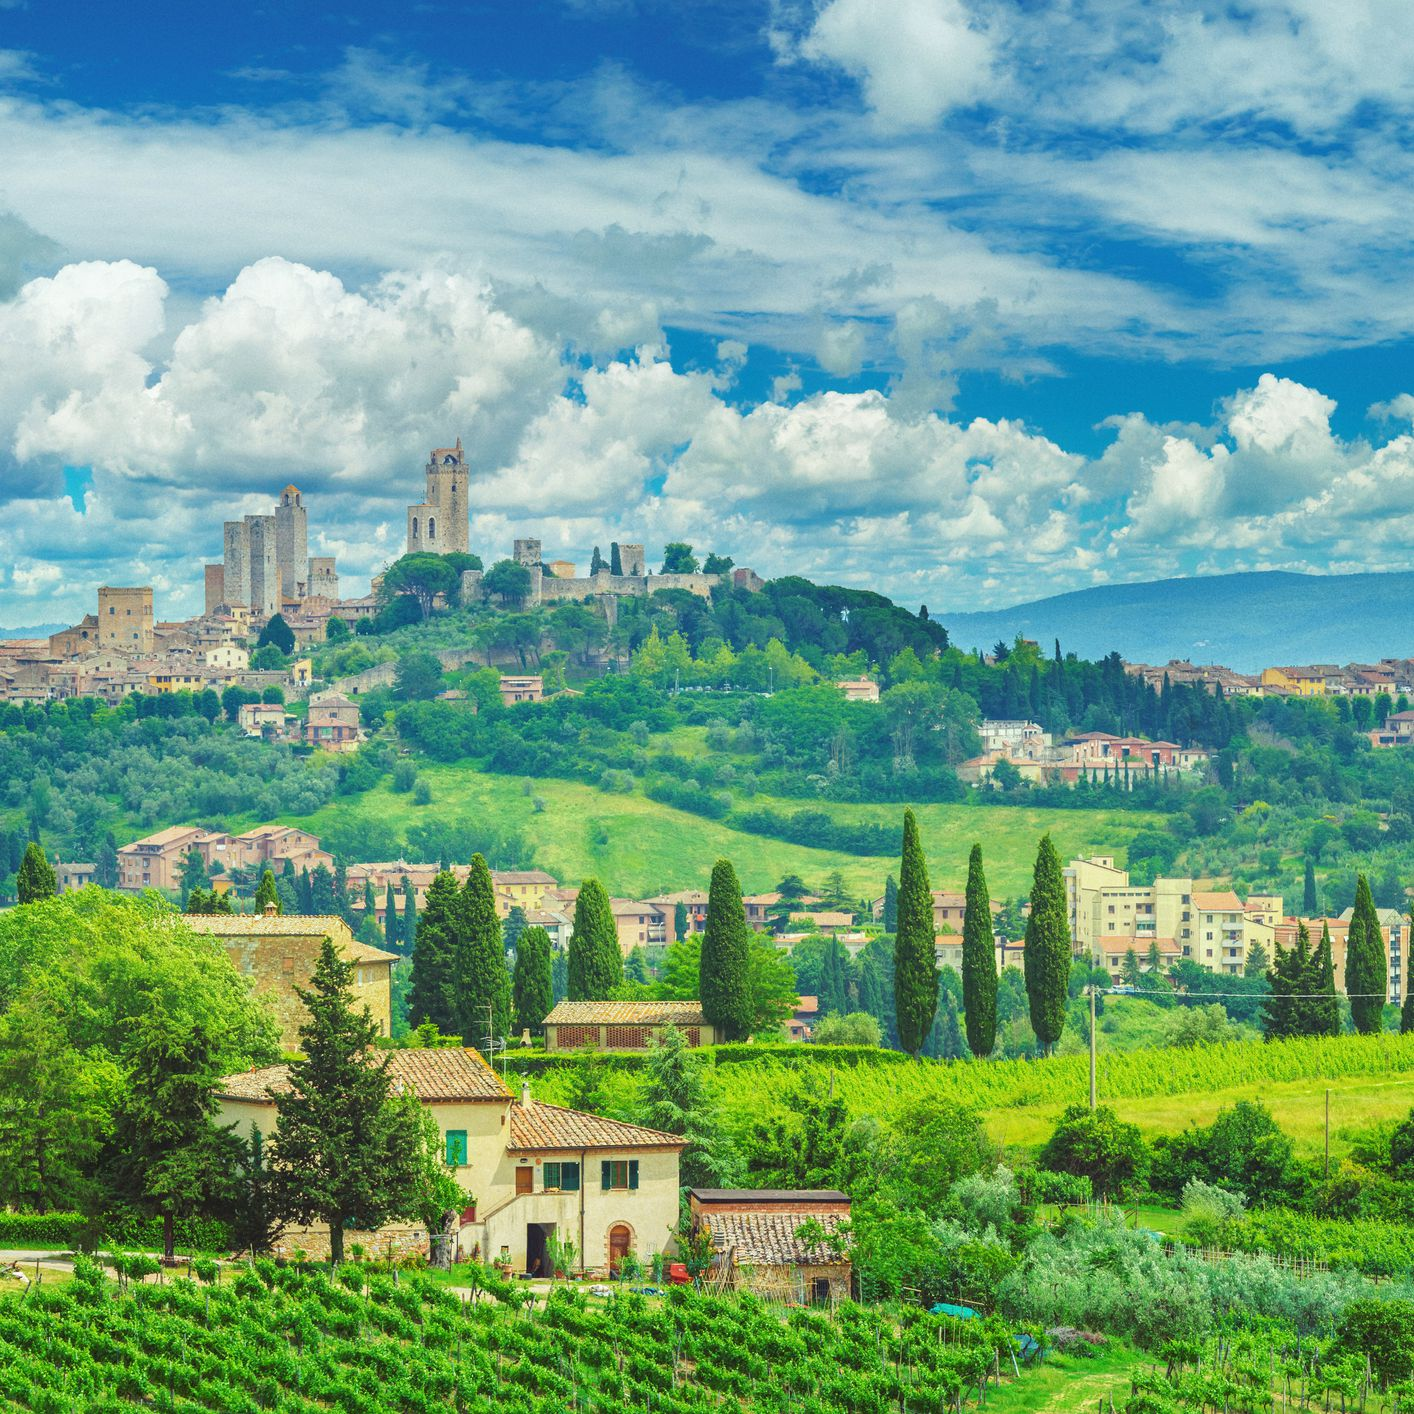 The Top 23 Things to Do in Italy